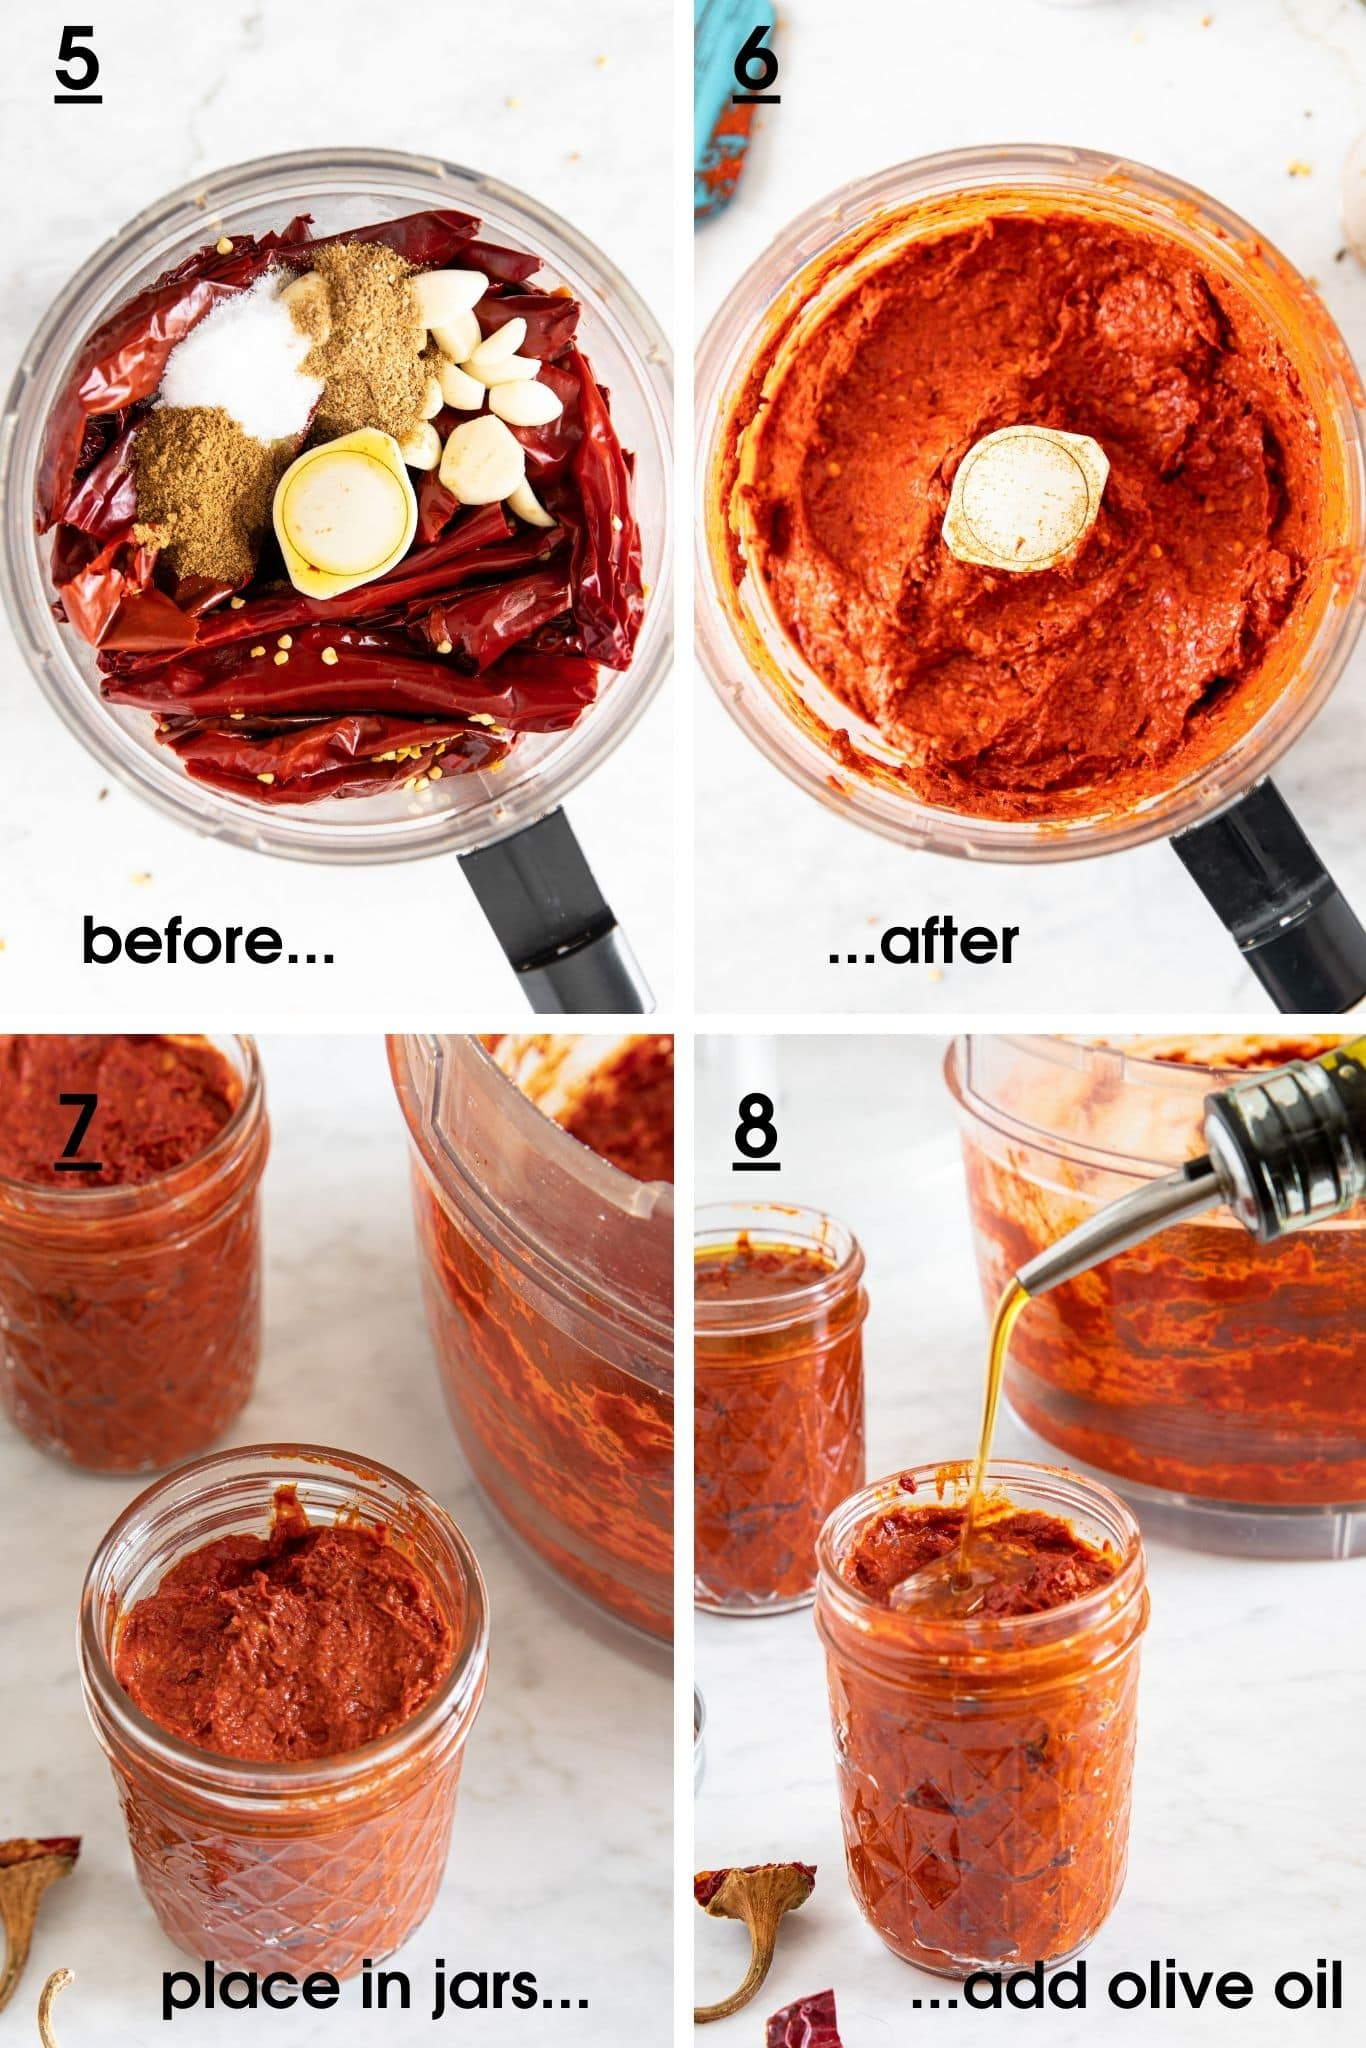 Photos how to make harissa paste in a food processor using dried chillies, garlic, cumin, coriander and olive oil; and how to store it in jars, with a layer of olive oil on top | from verygoodcook.com